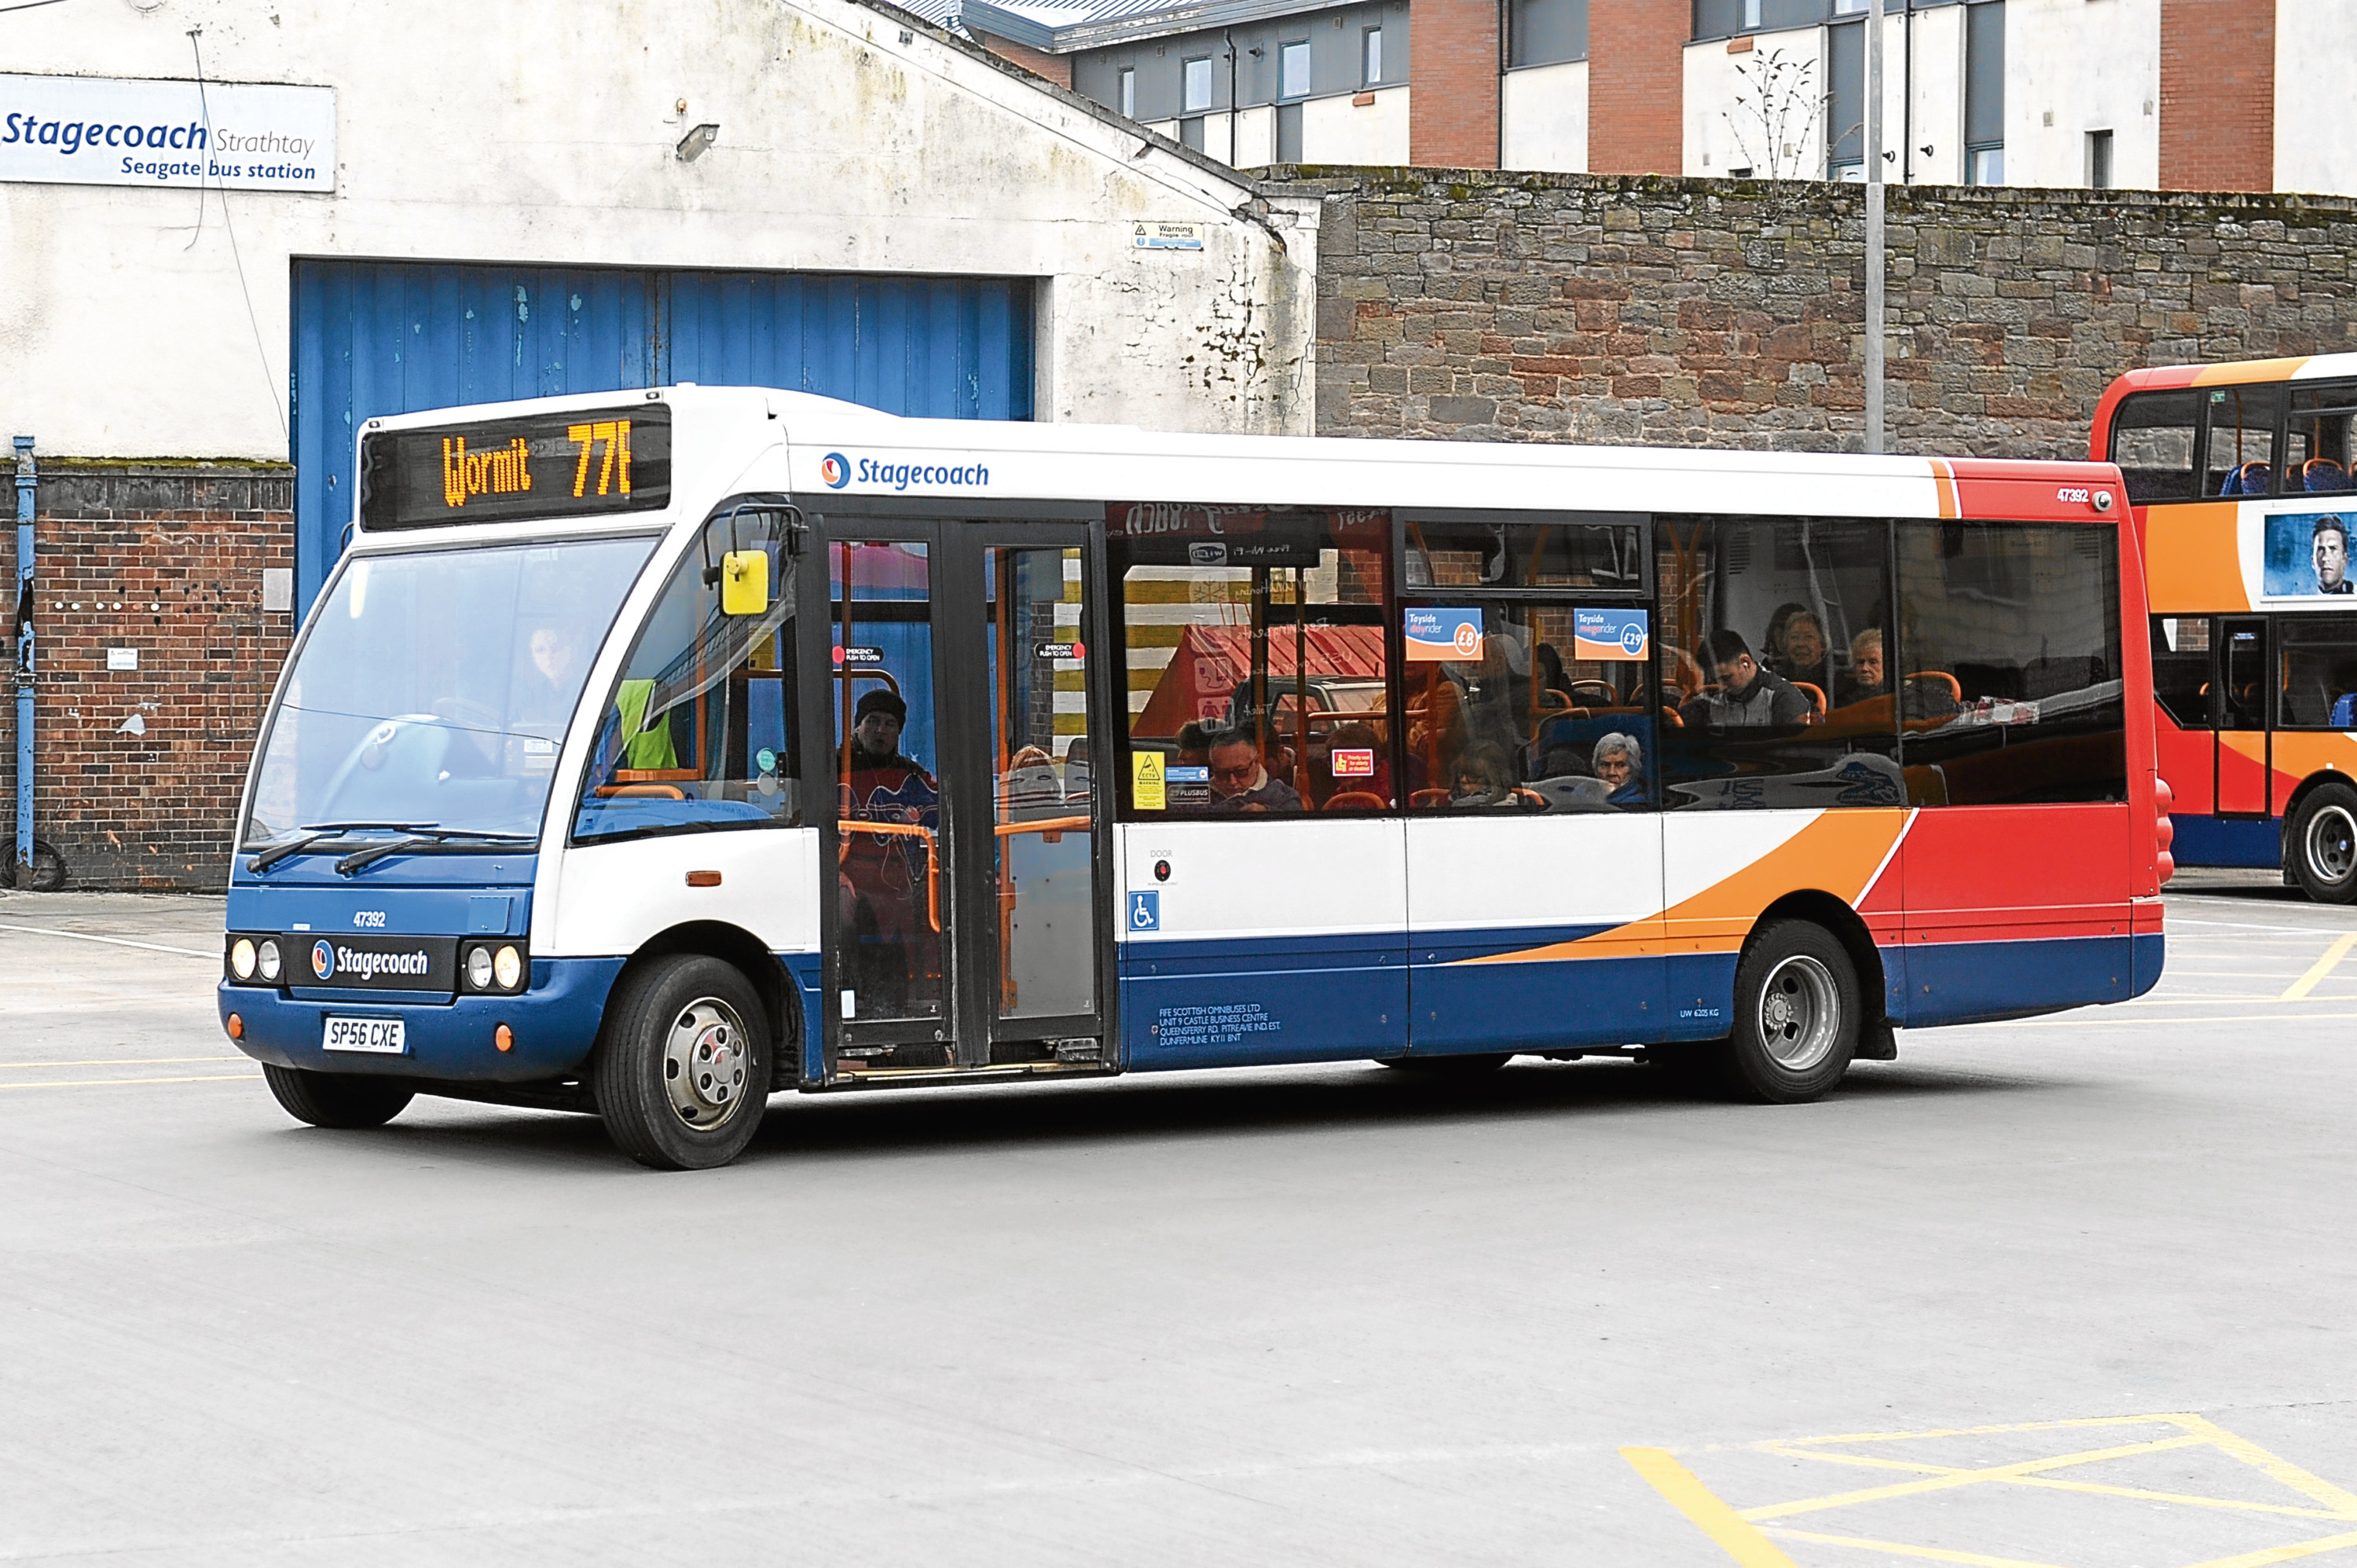 The 77B service, which runs from Dundee to Wormit, was set to be cancelled following a review of services by Stagecoach.